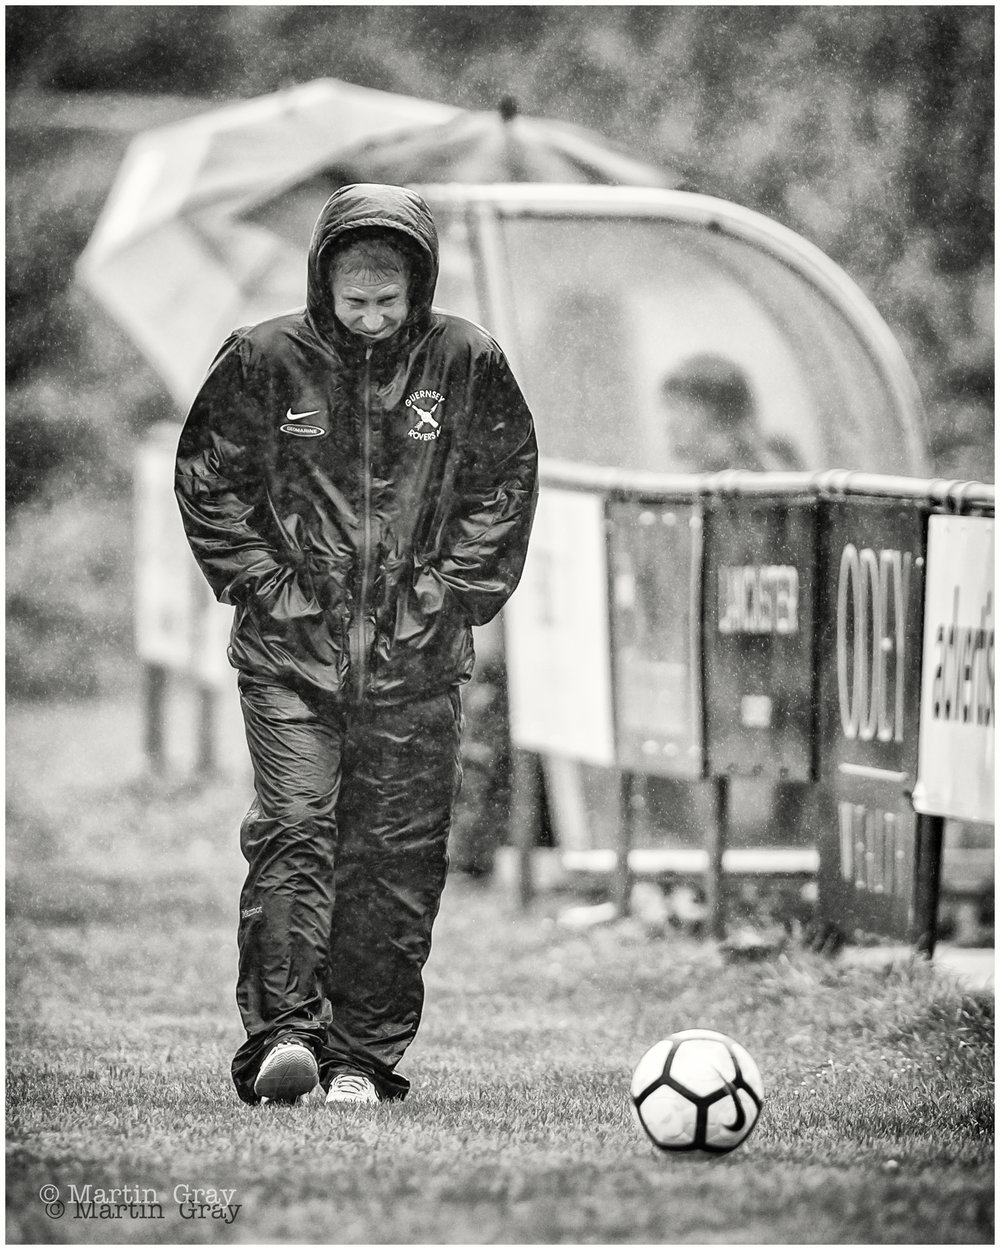 'The Coach' …    Guernsey Eisteddfod 2019 Projected Digital Image Portrait Winner…